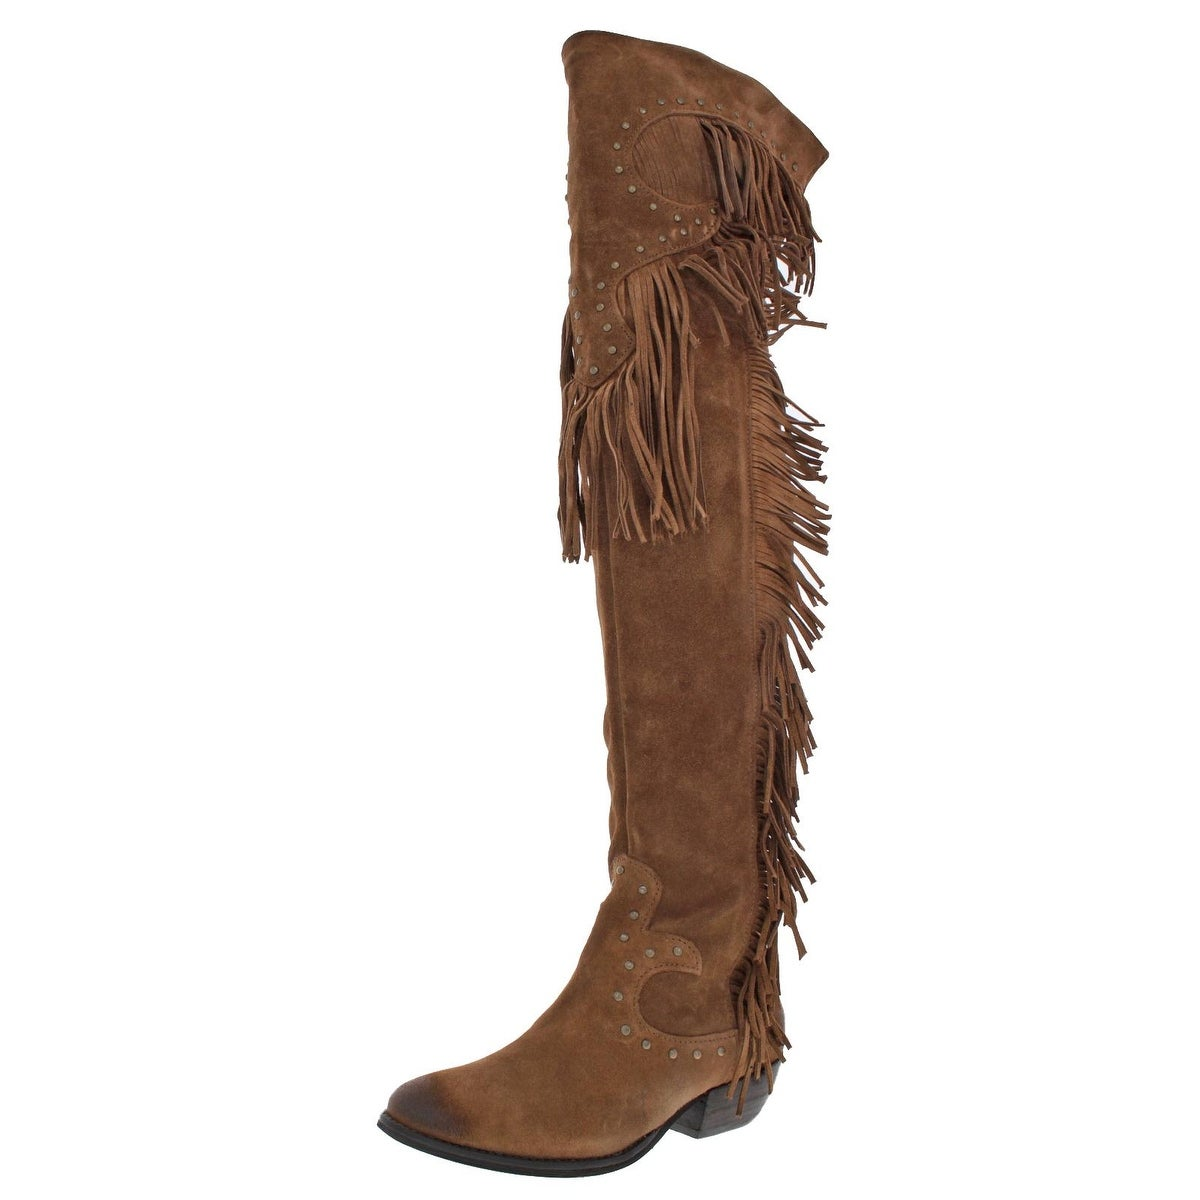 b218aa12bf4 Buy Over-the-Knee Women's Boots Online at Overstock | Our Best ...